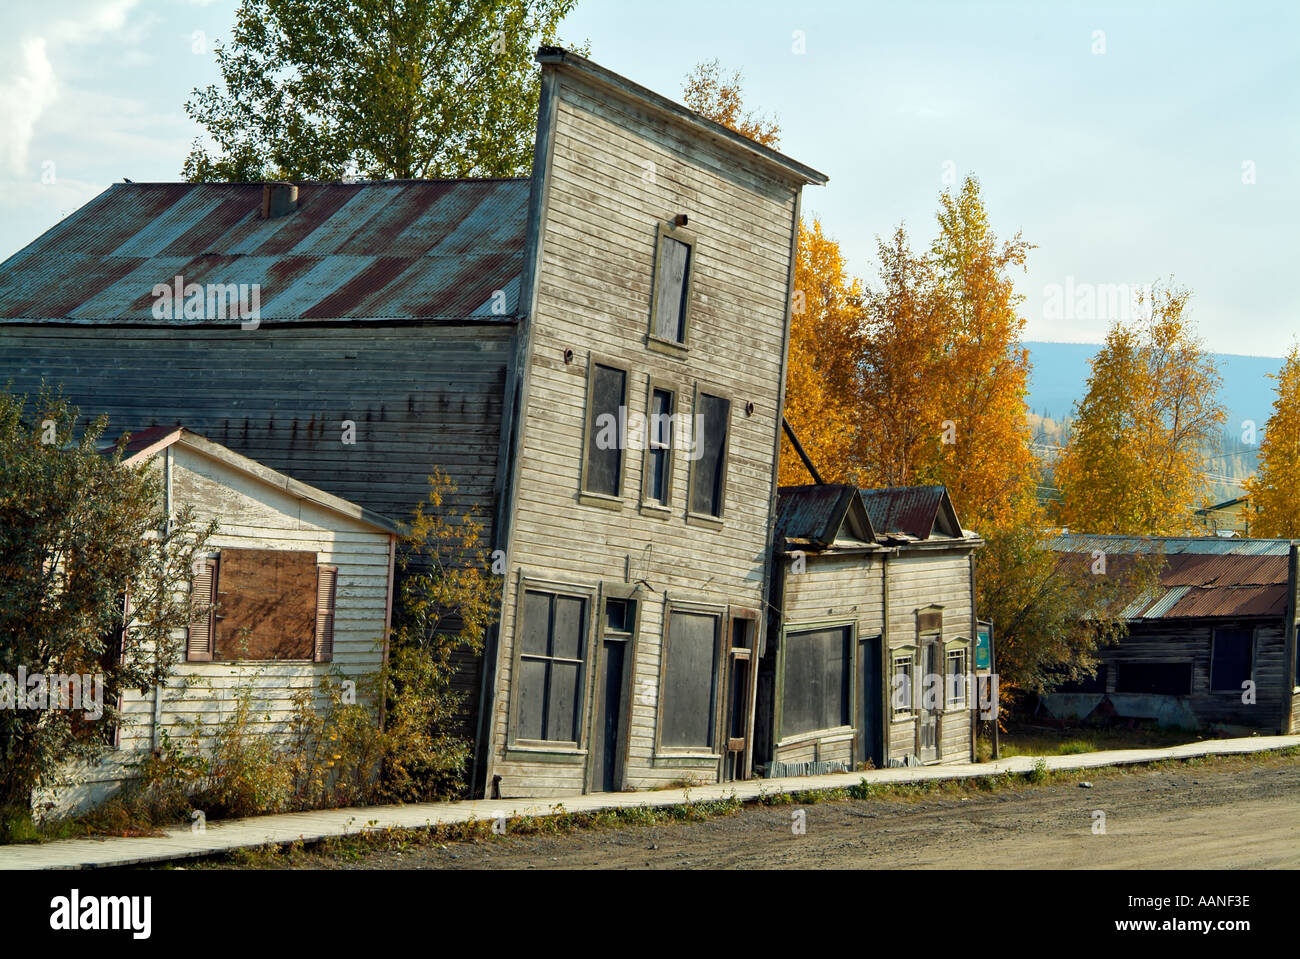 Old wooden buildings in Dawson City suffering from the effects of permafrost, Yukon, Canada - Stock Image